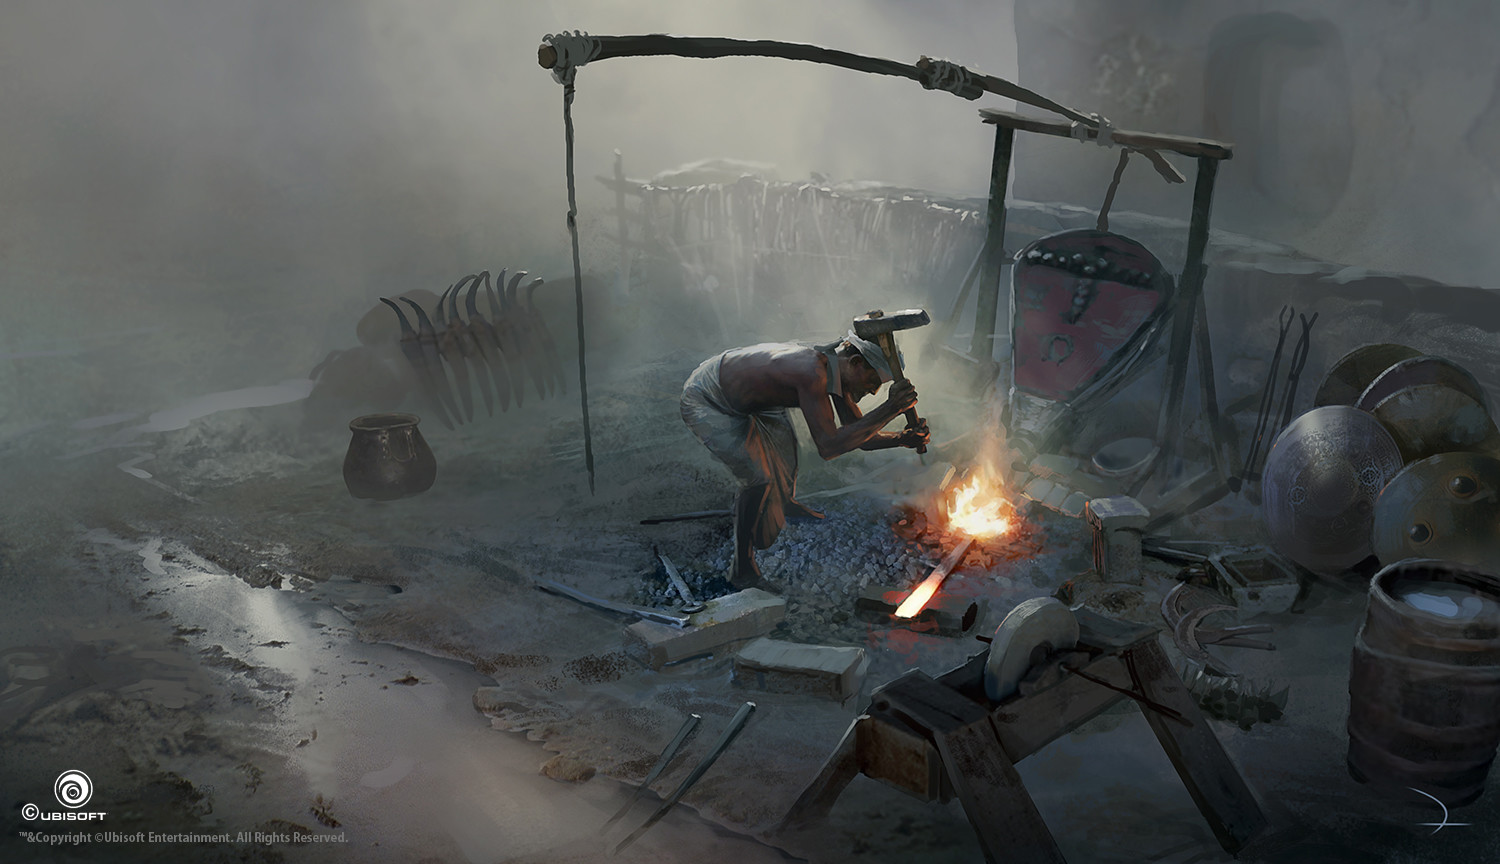 martin-deschambault-aco-shop-blacksmith-mdeschambault